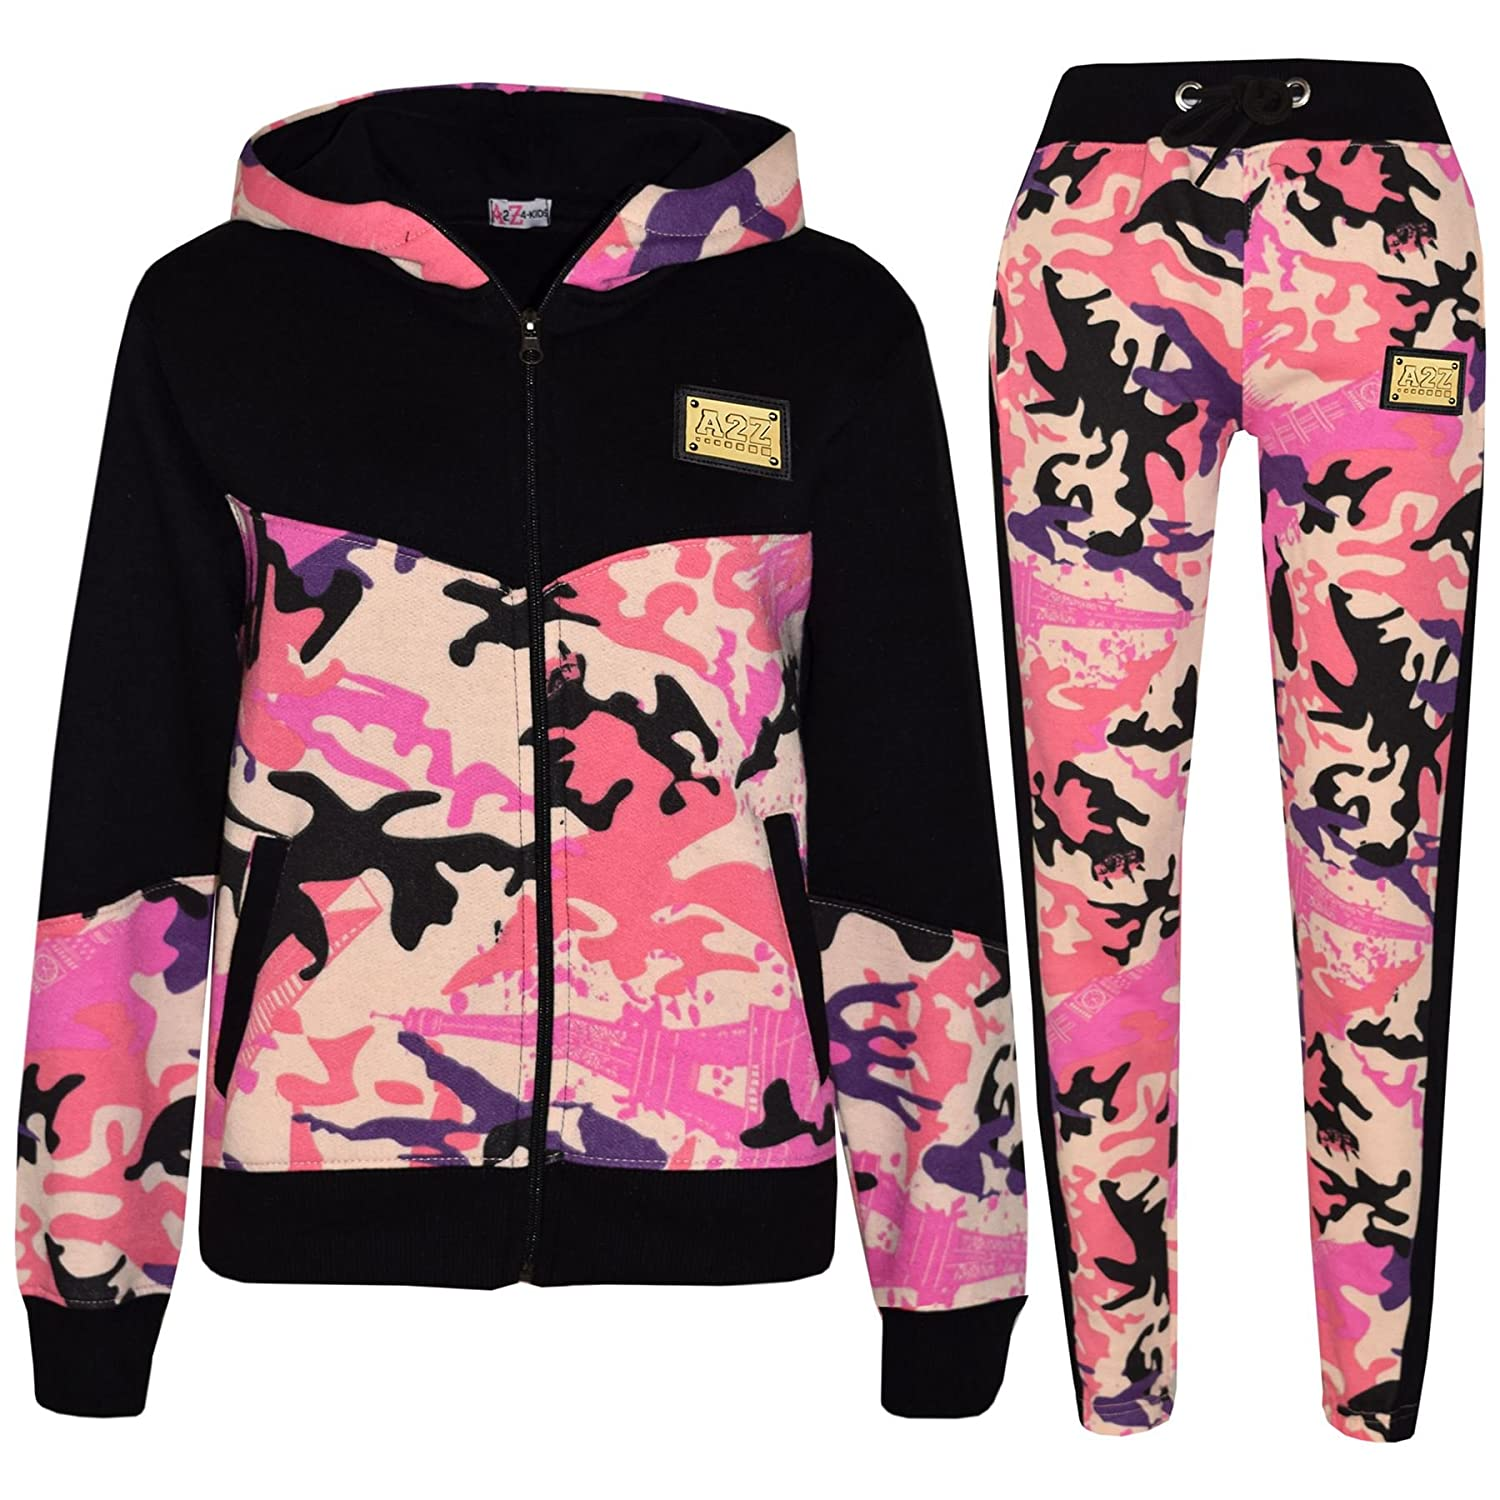 A2Z 4 Kids® Kids Girls Tracksuit Designer's A2Z Badged Camouflage Baby Pink Contrast Panel Hooded Top Botom Jogging Suit Age 5 6 7 8 9 10 11 12 13 Years